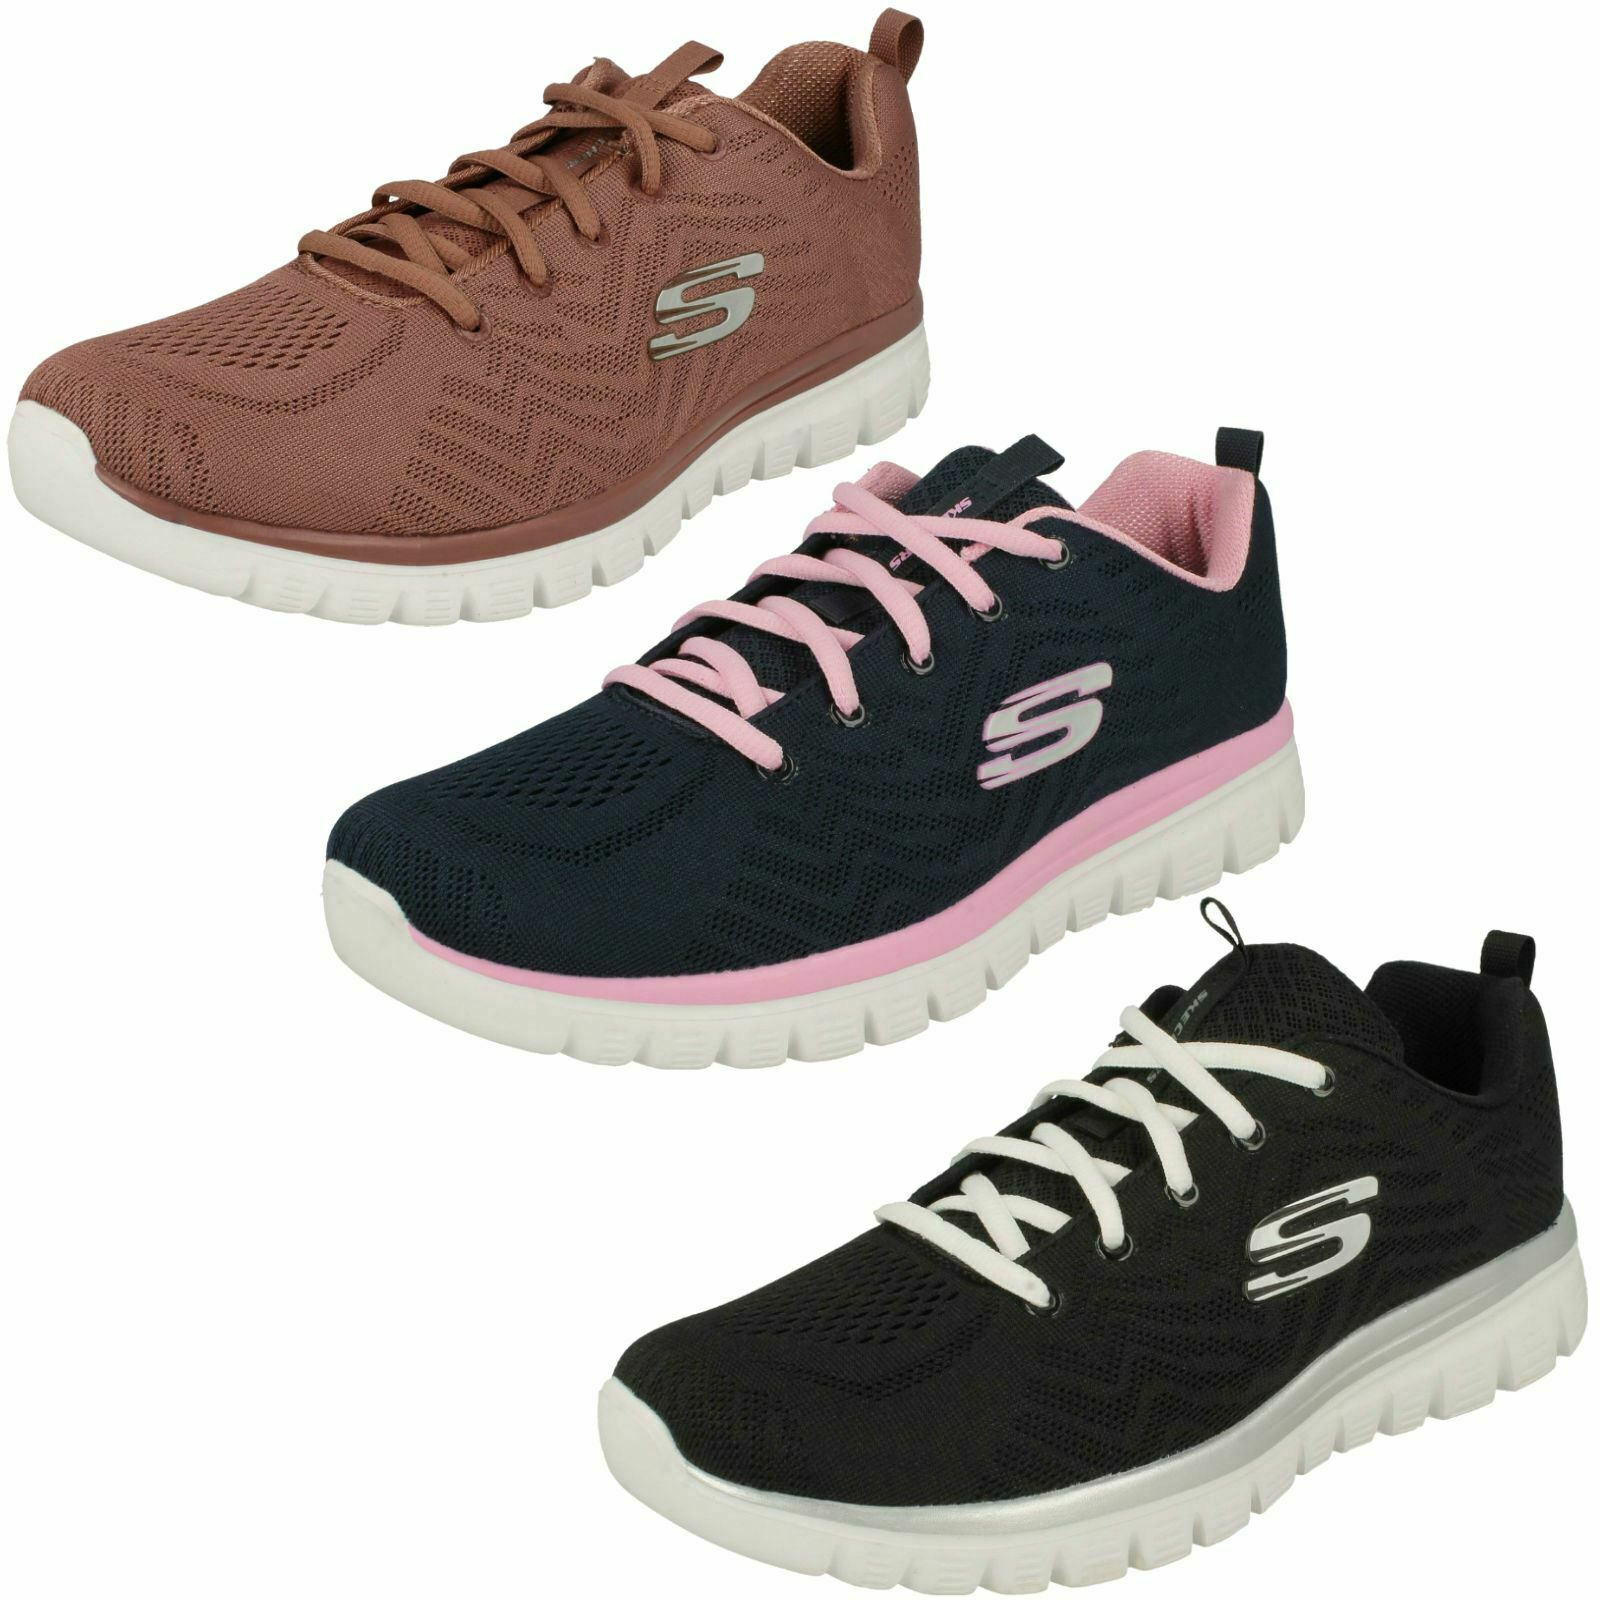 Womens Skechers Graceful Get Connected